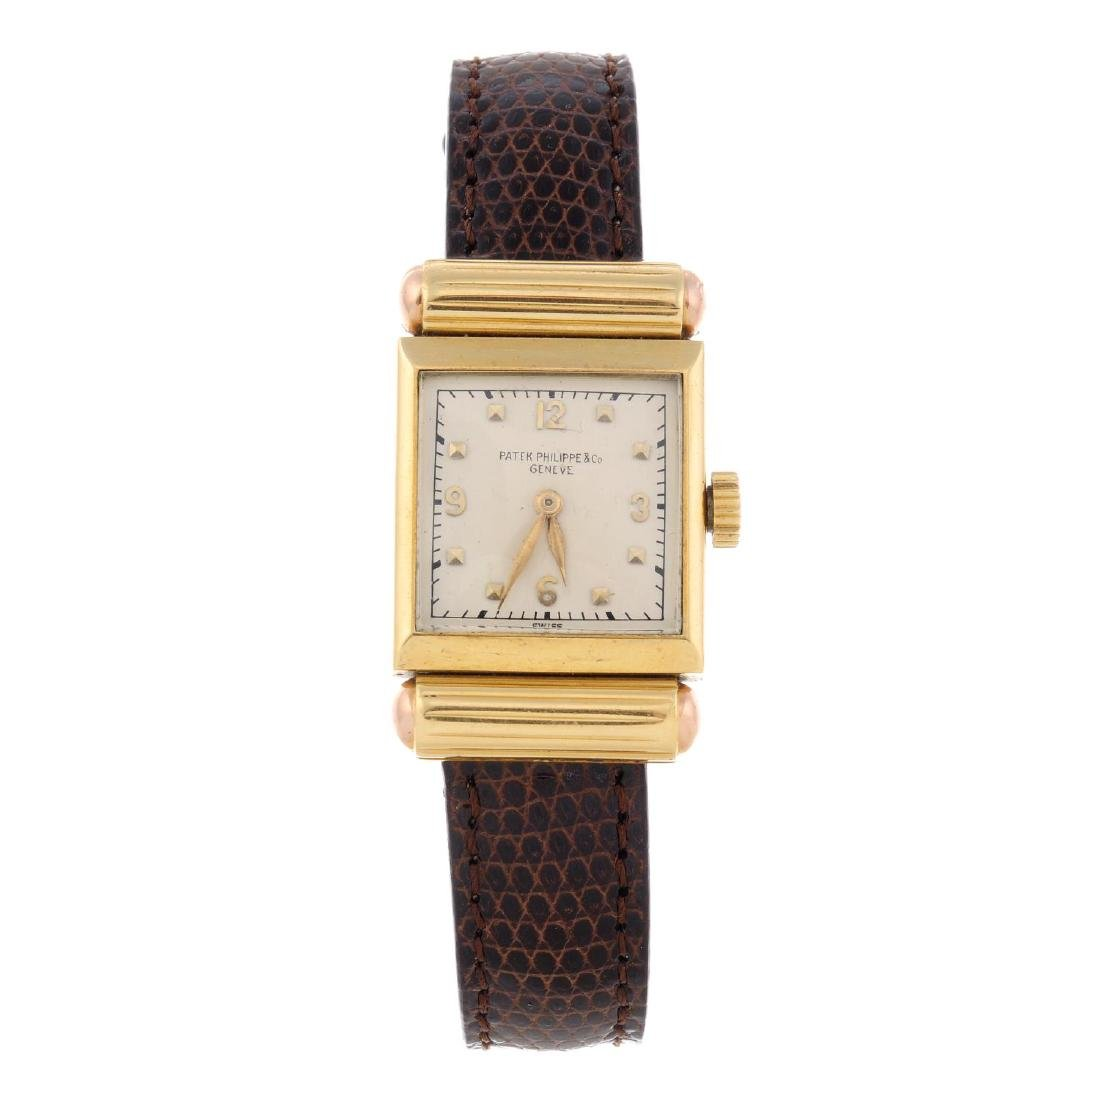 PATEK PHILIPPE - a lady's wrist watch. Yellow metal